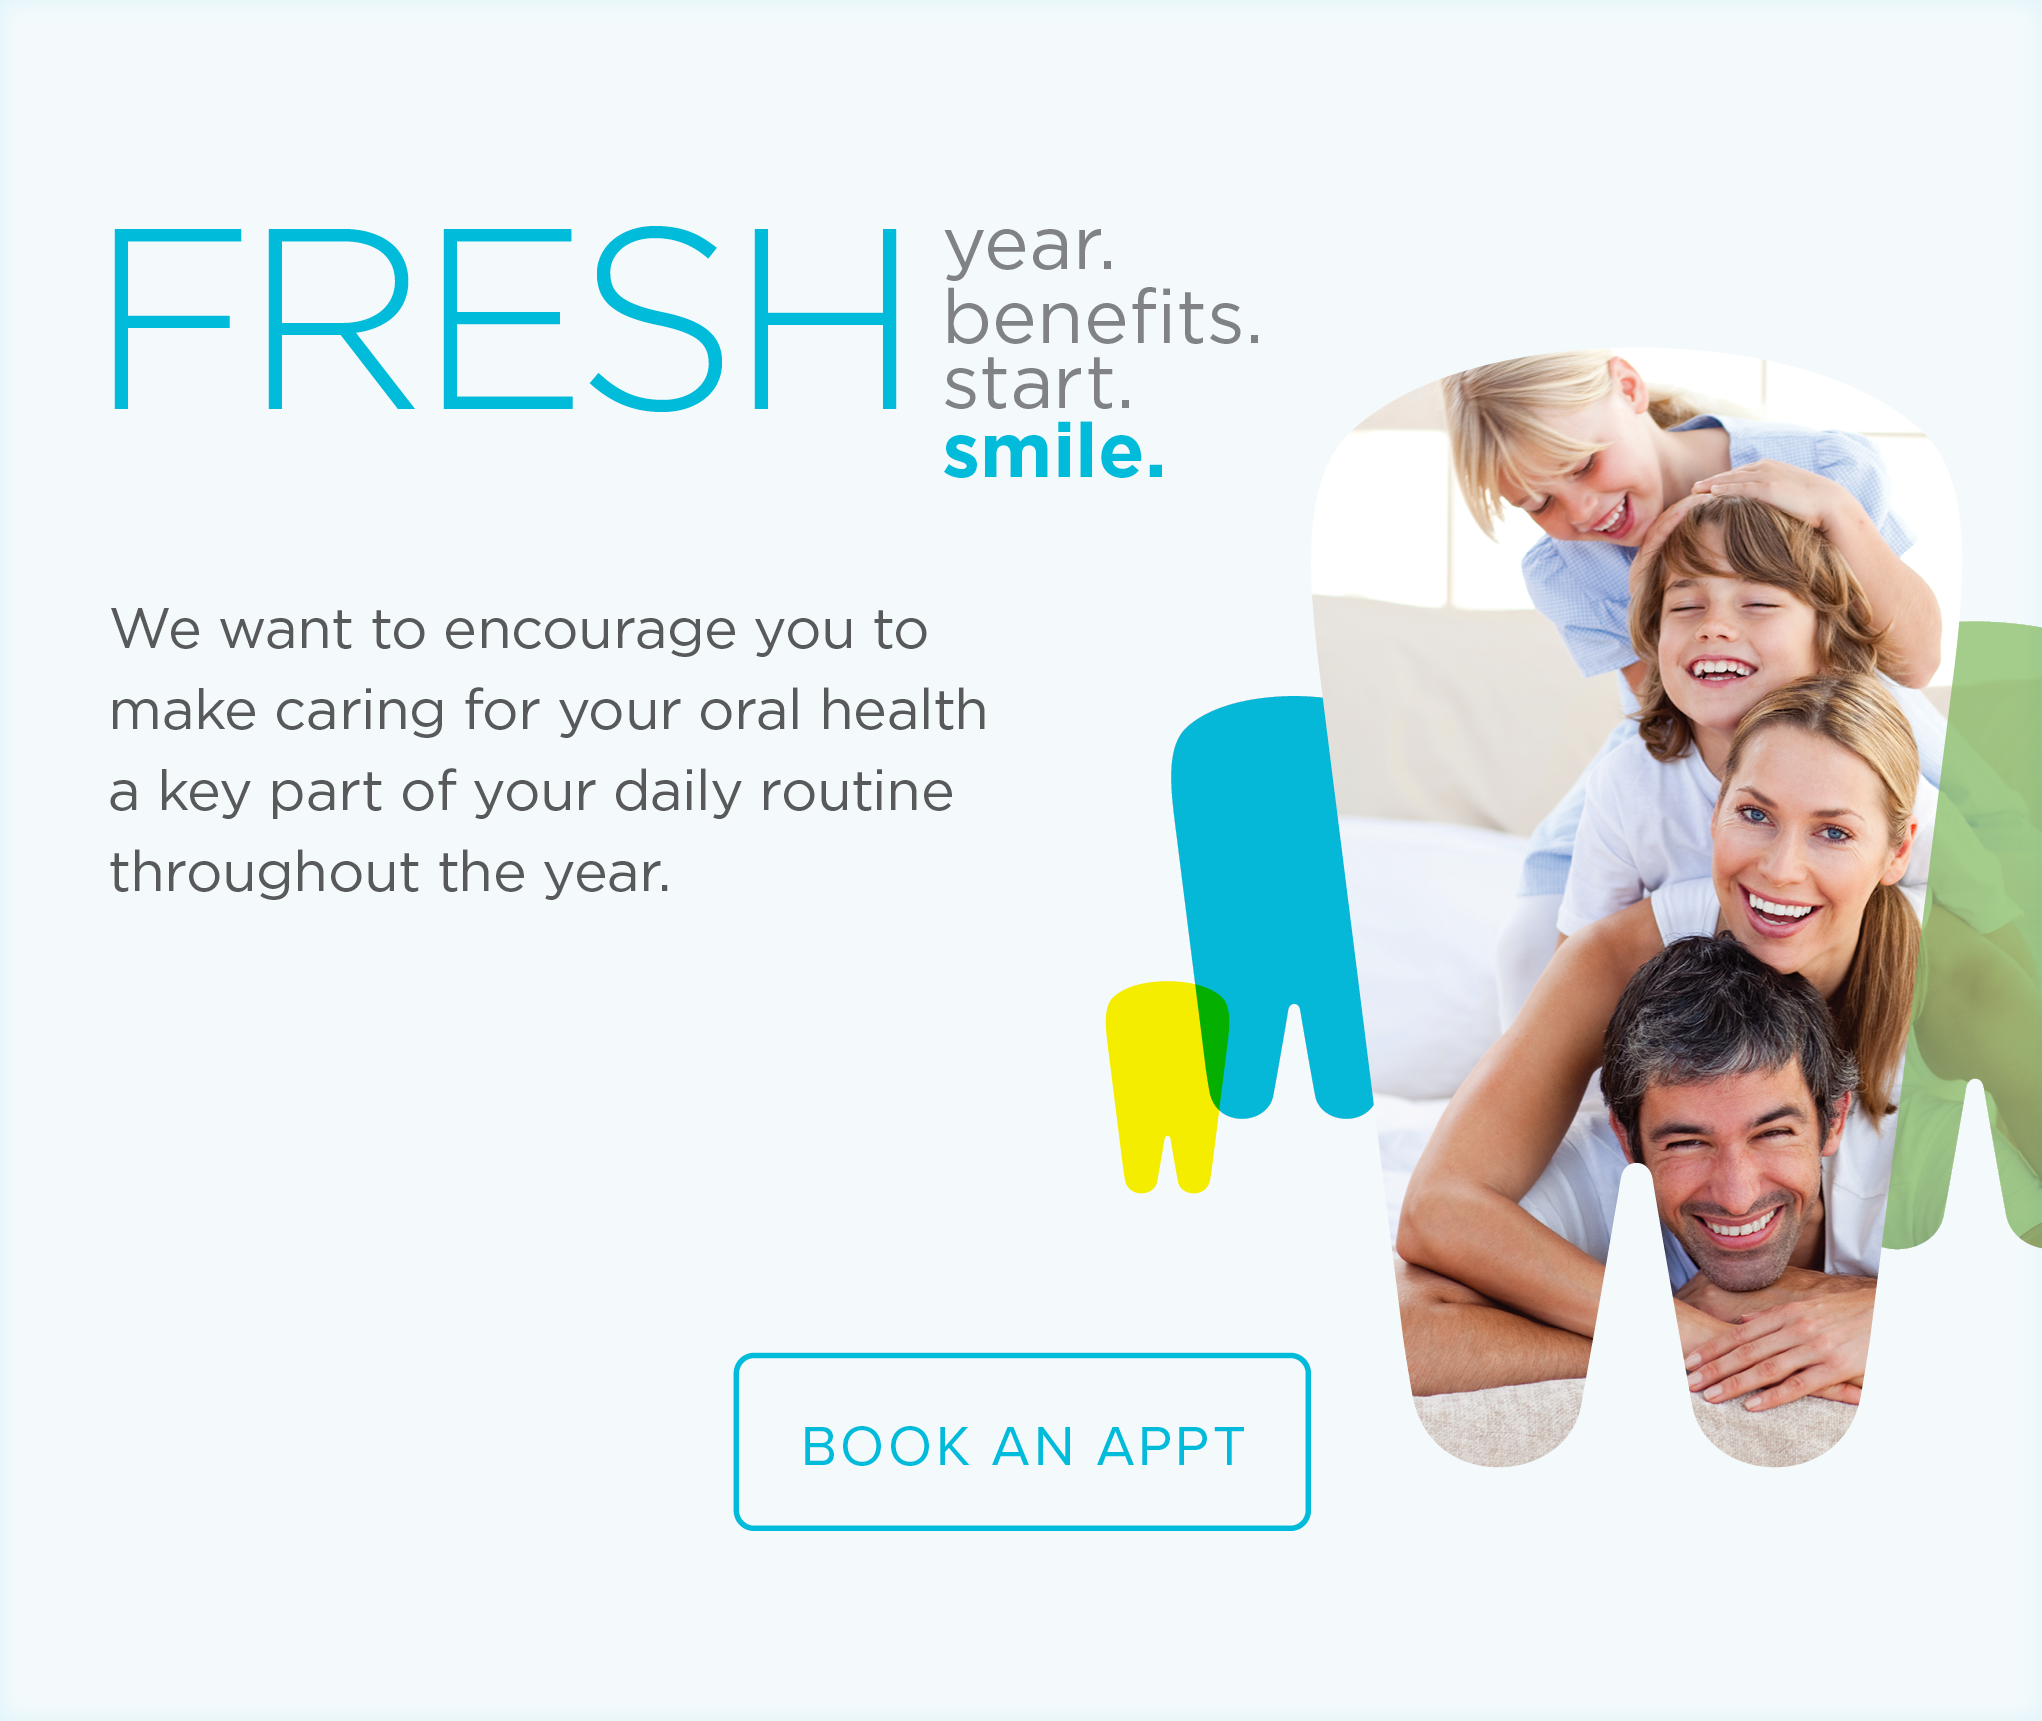 Glendale Modern Dentistry - Make the Most of Your Benefits